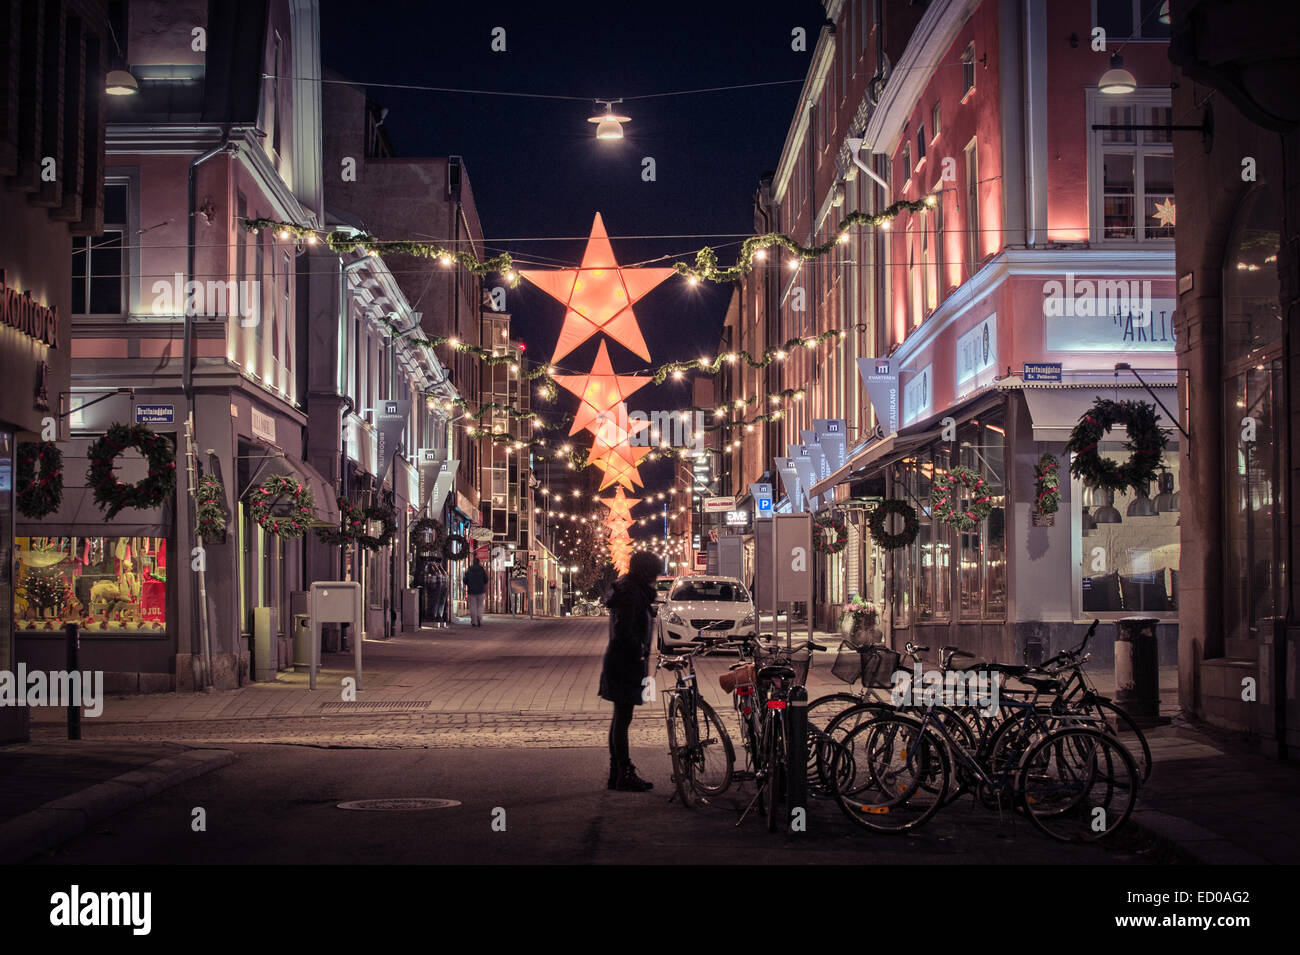 Christmas decorations in the city center of Norrkoping, Sweden. - Stock Image